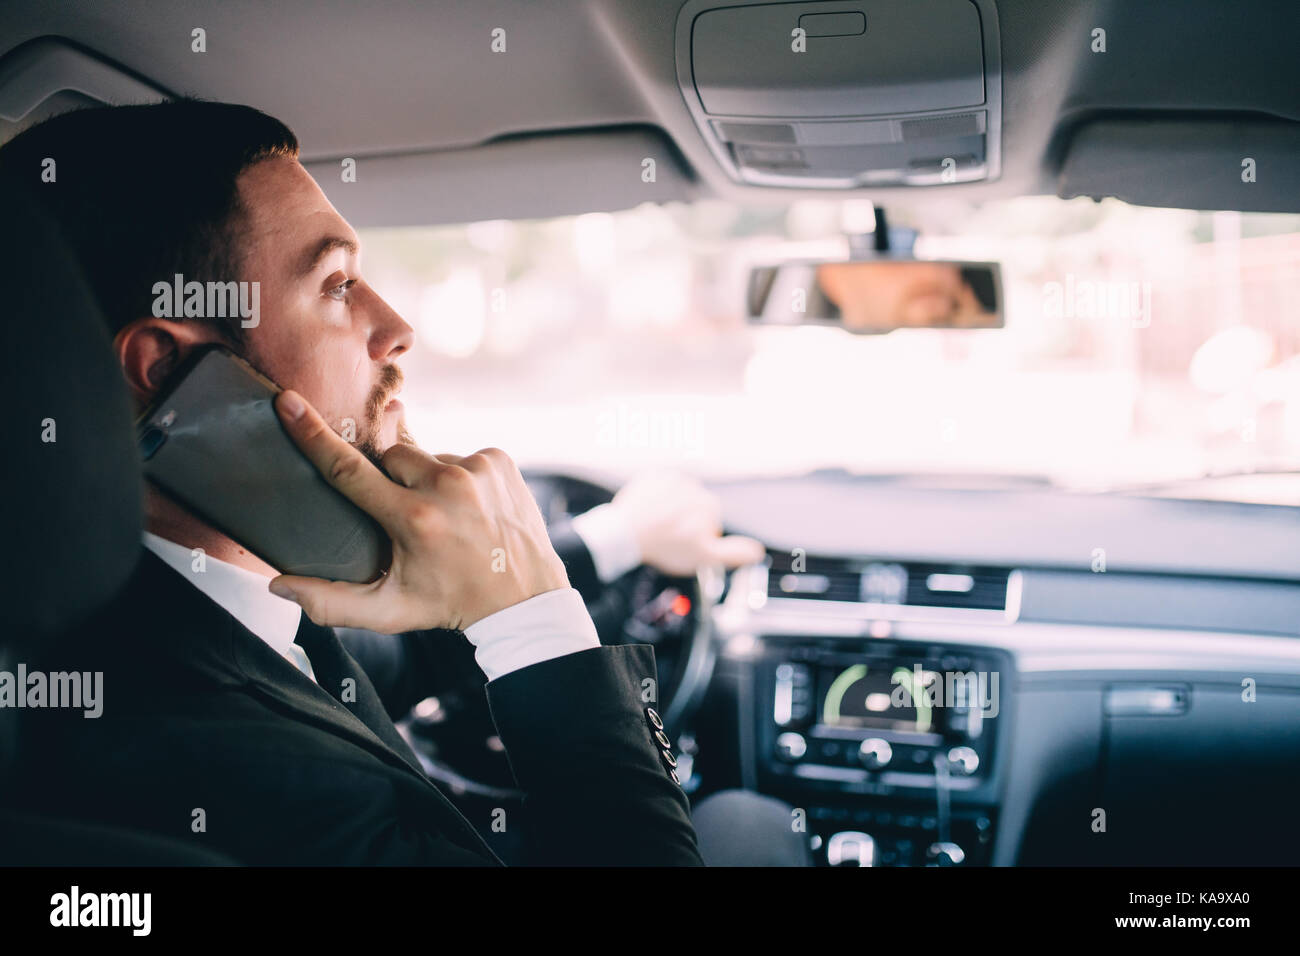 Man using his phone while driving the car - Stock Image